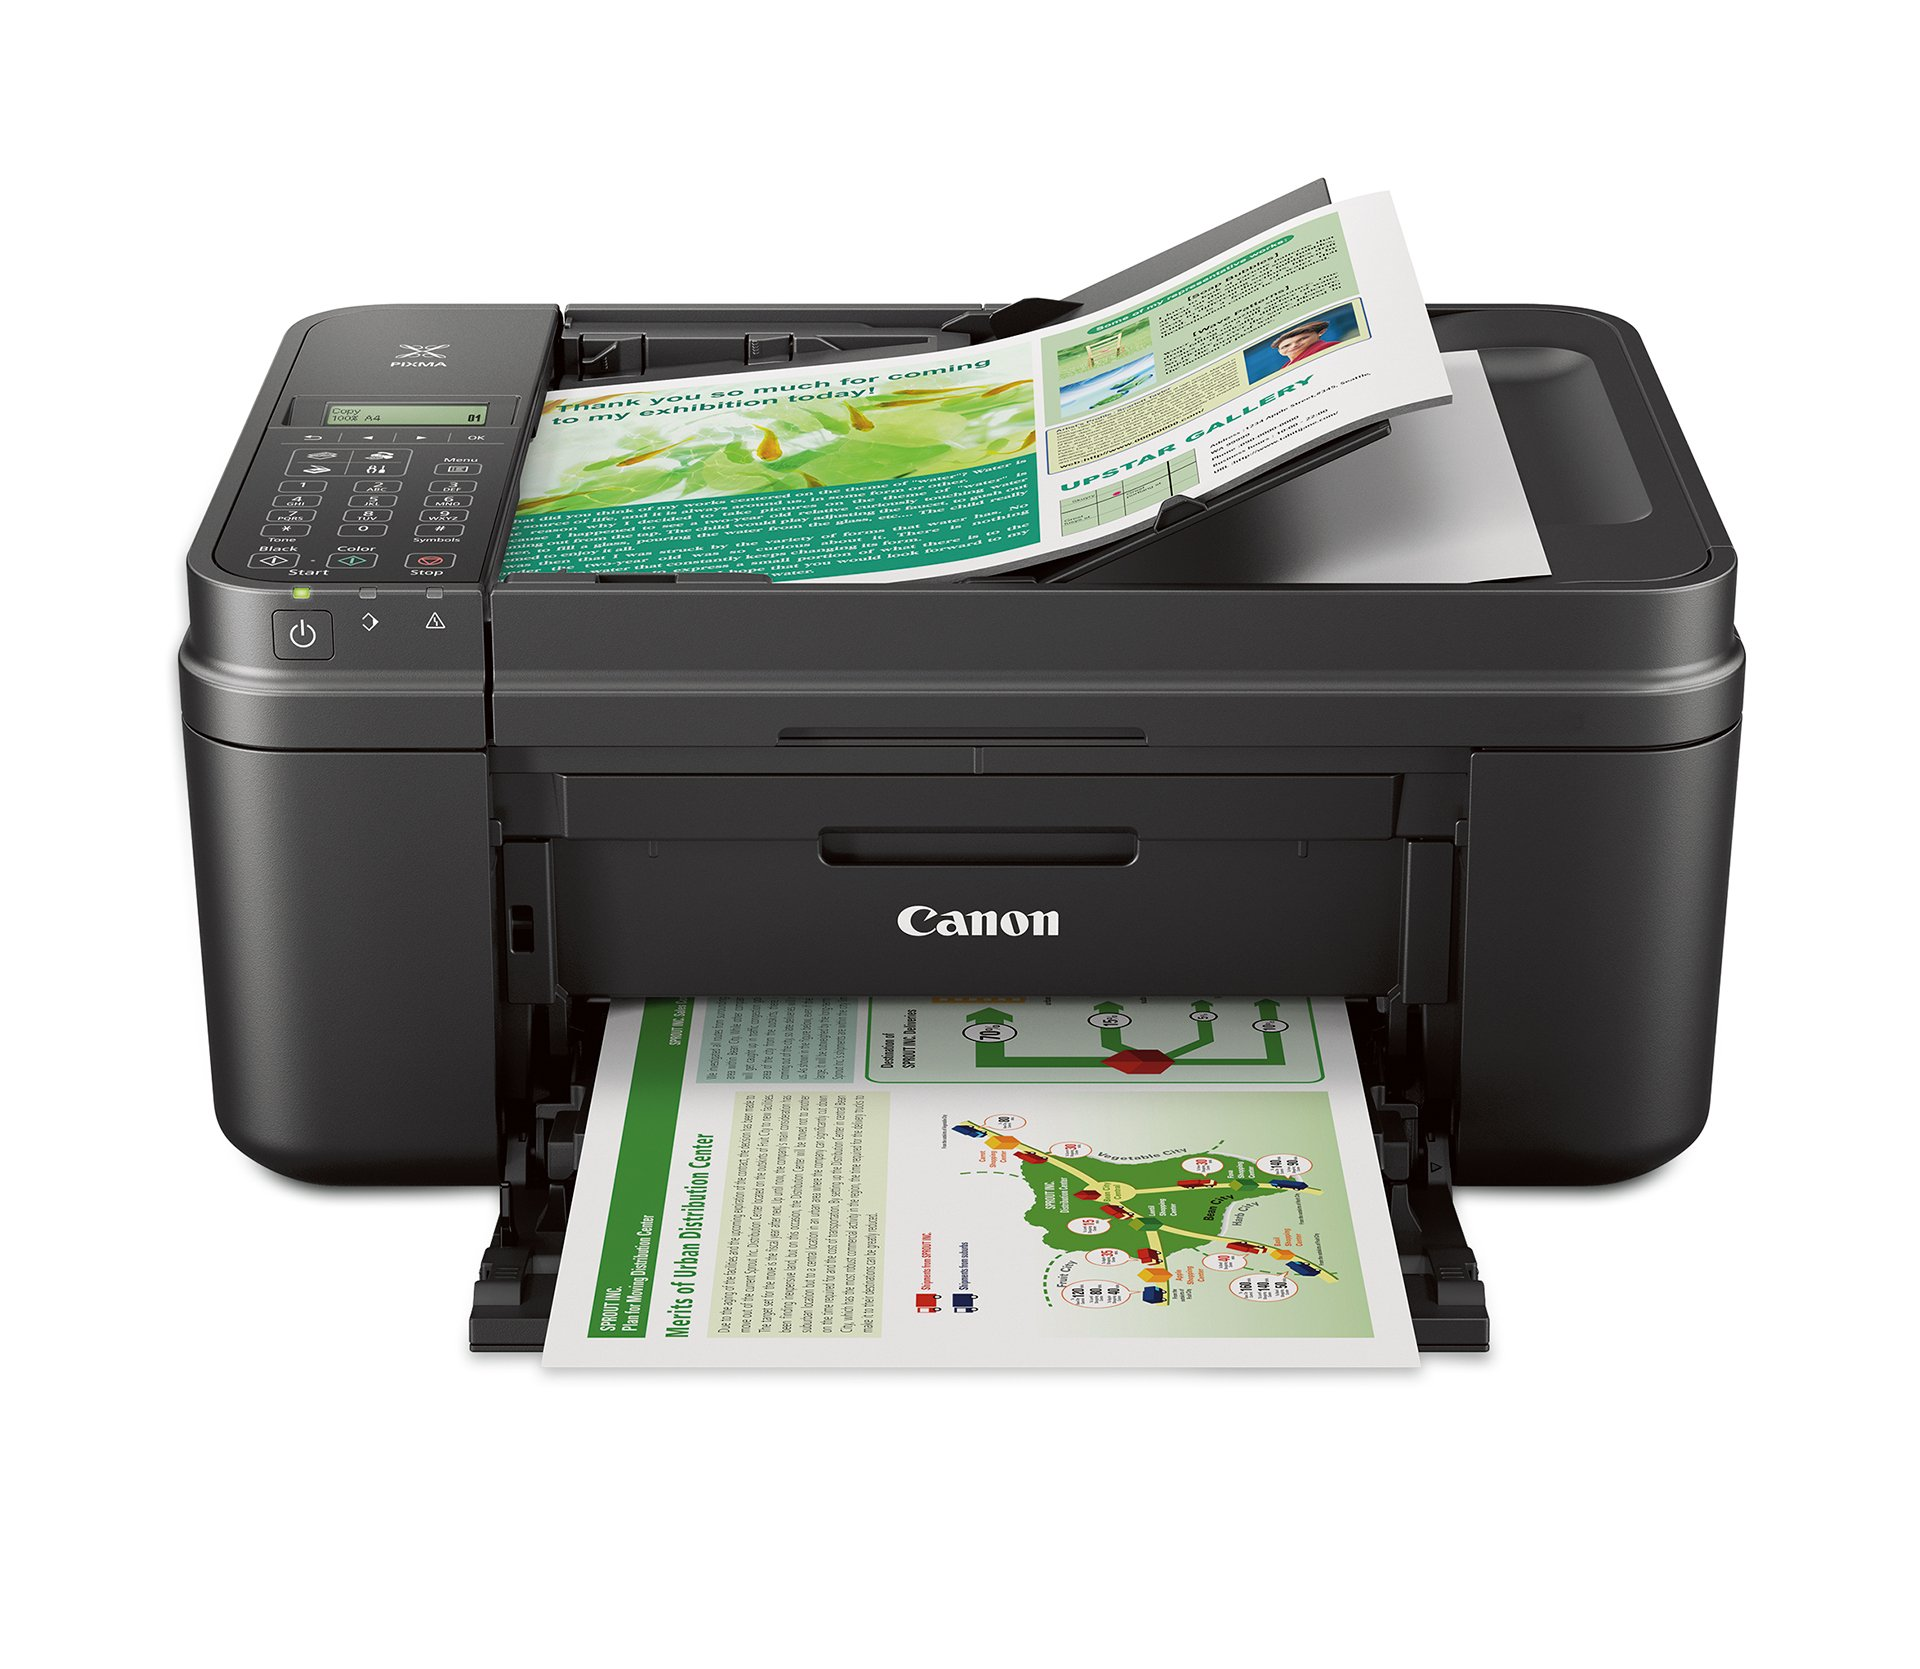 Canon MX492 Wireless All-IN-One Small Printer with Mobile or Tablet Printing, Airprint and Google Cloud Print Compatible